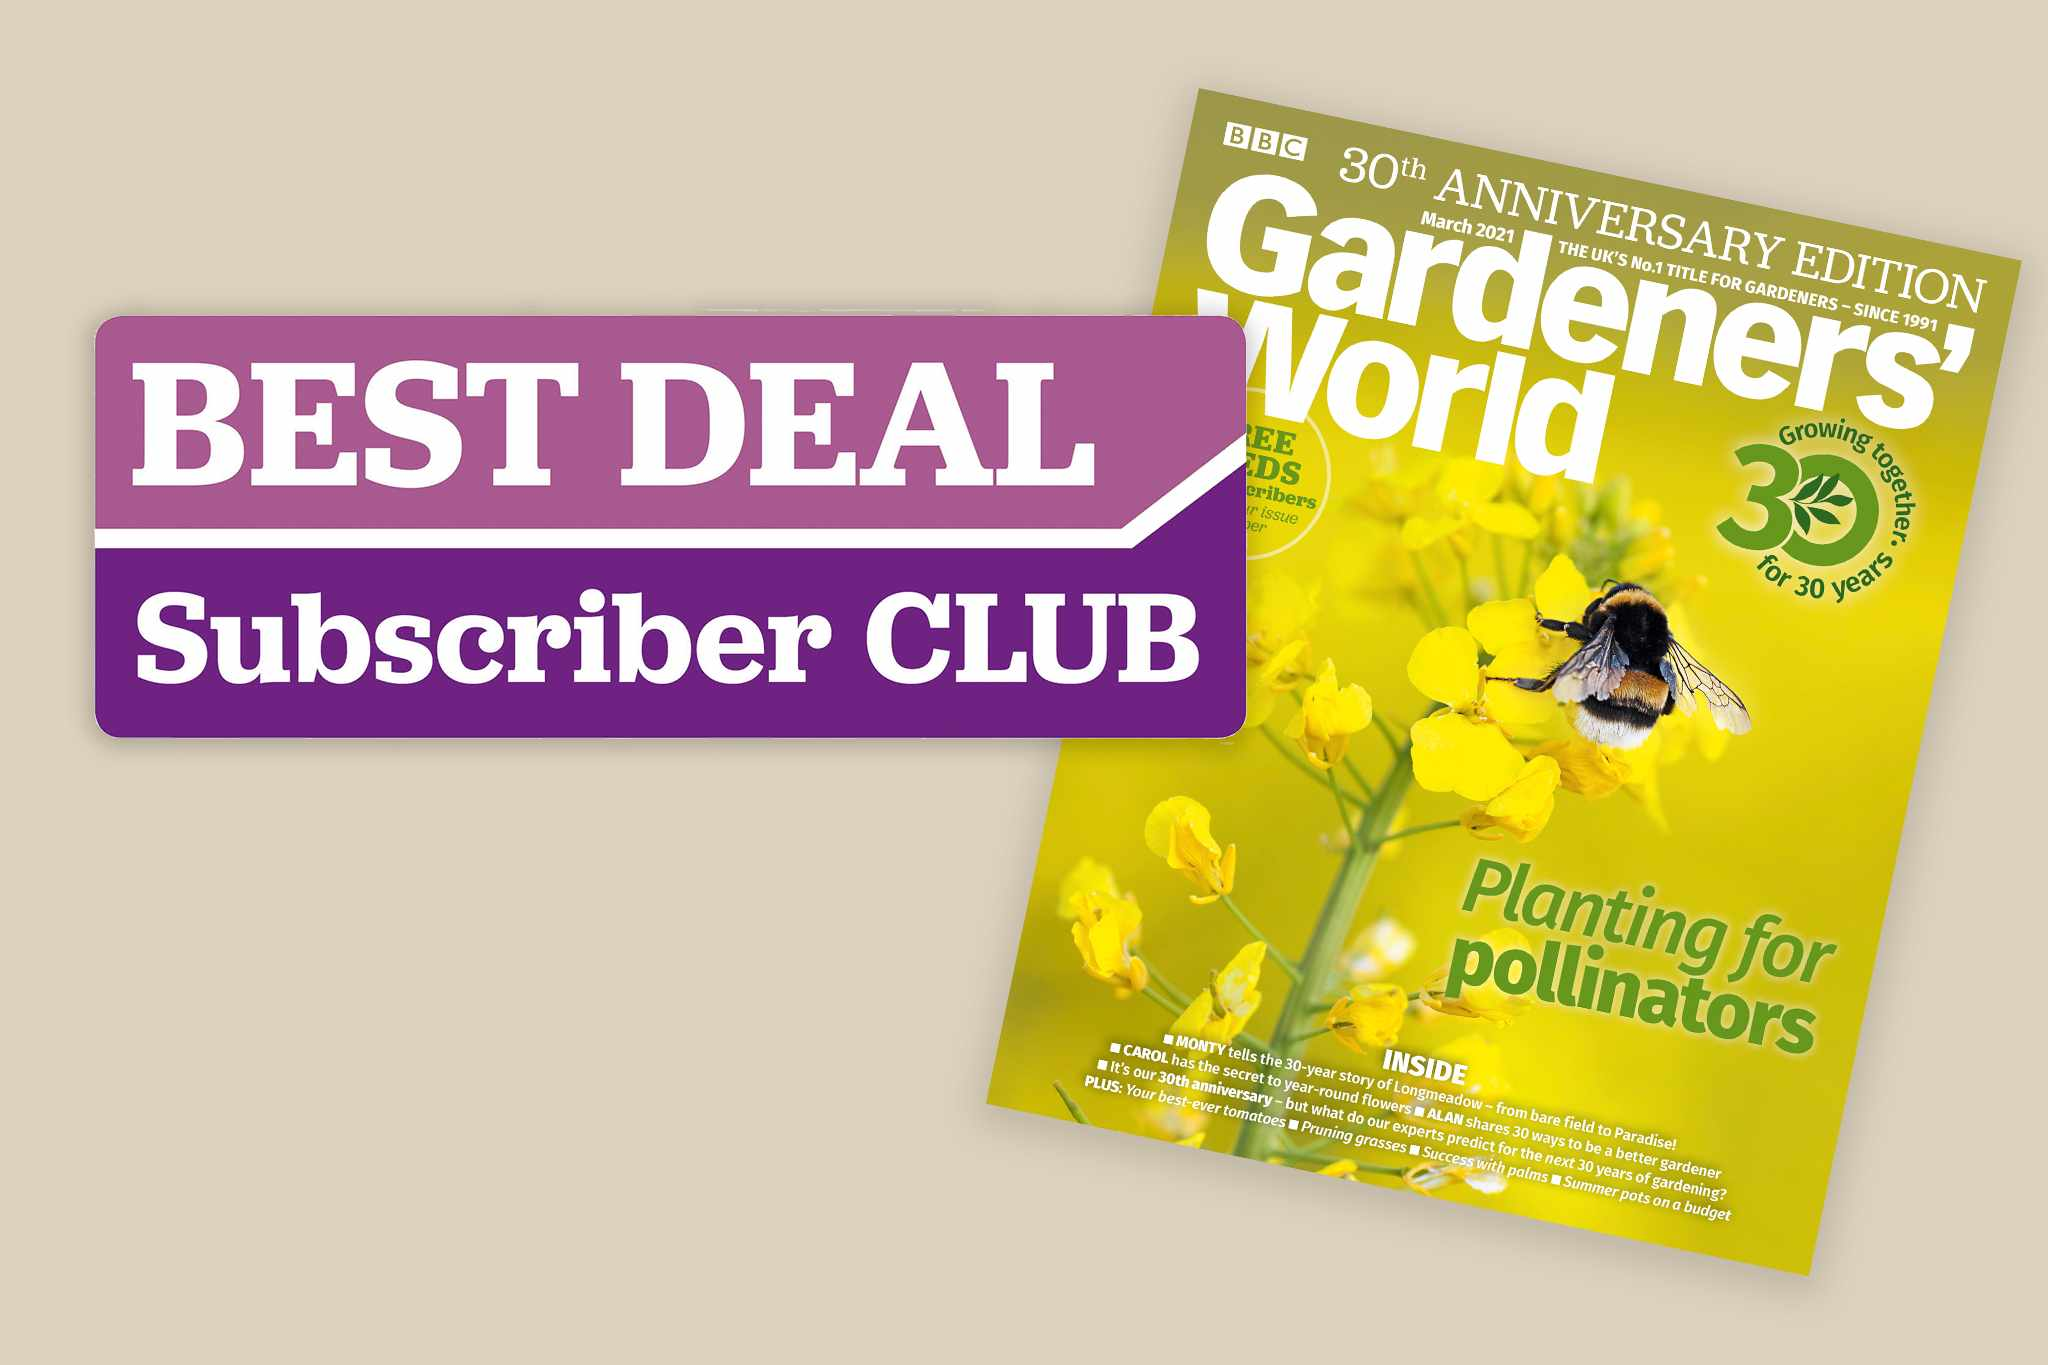 30th anniversary March issue - subscribers save 10% with our selected partners